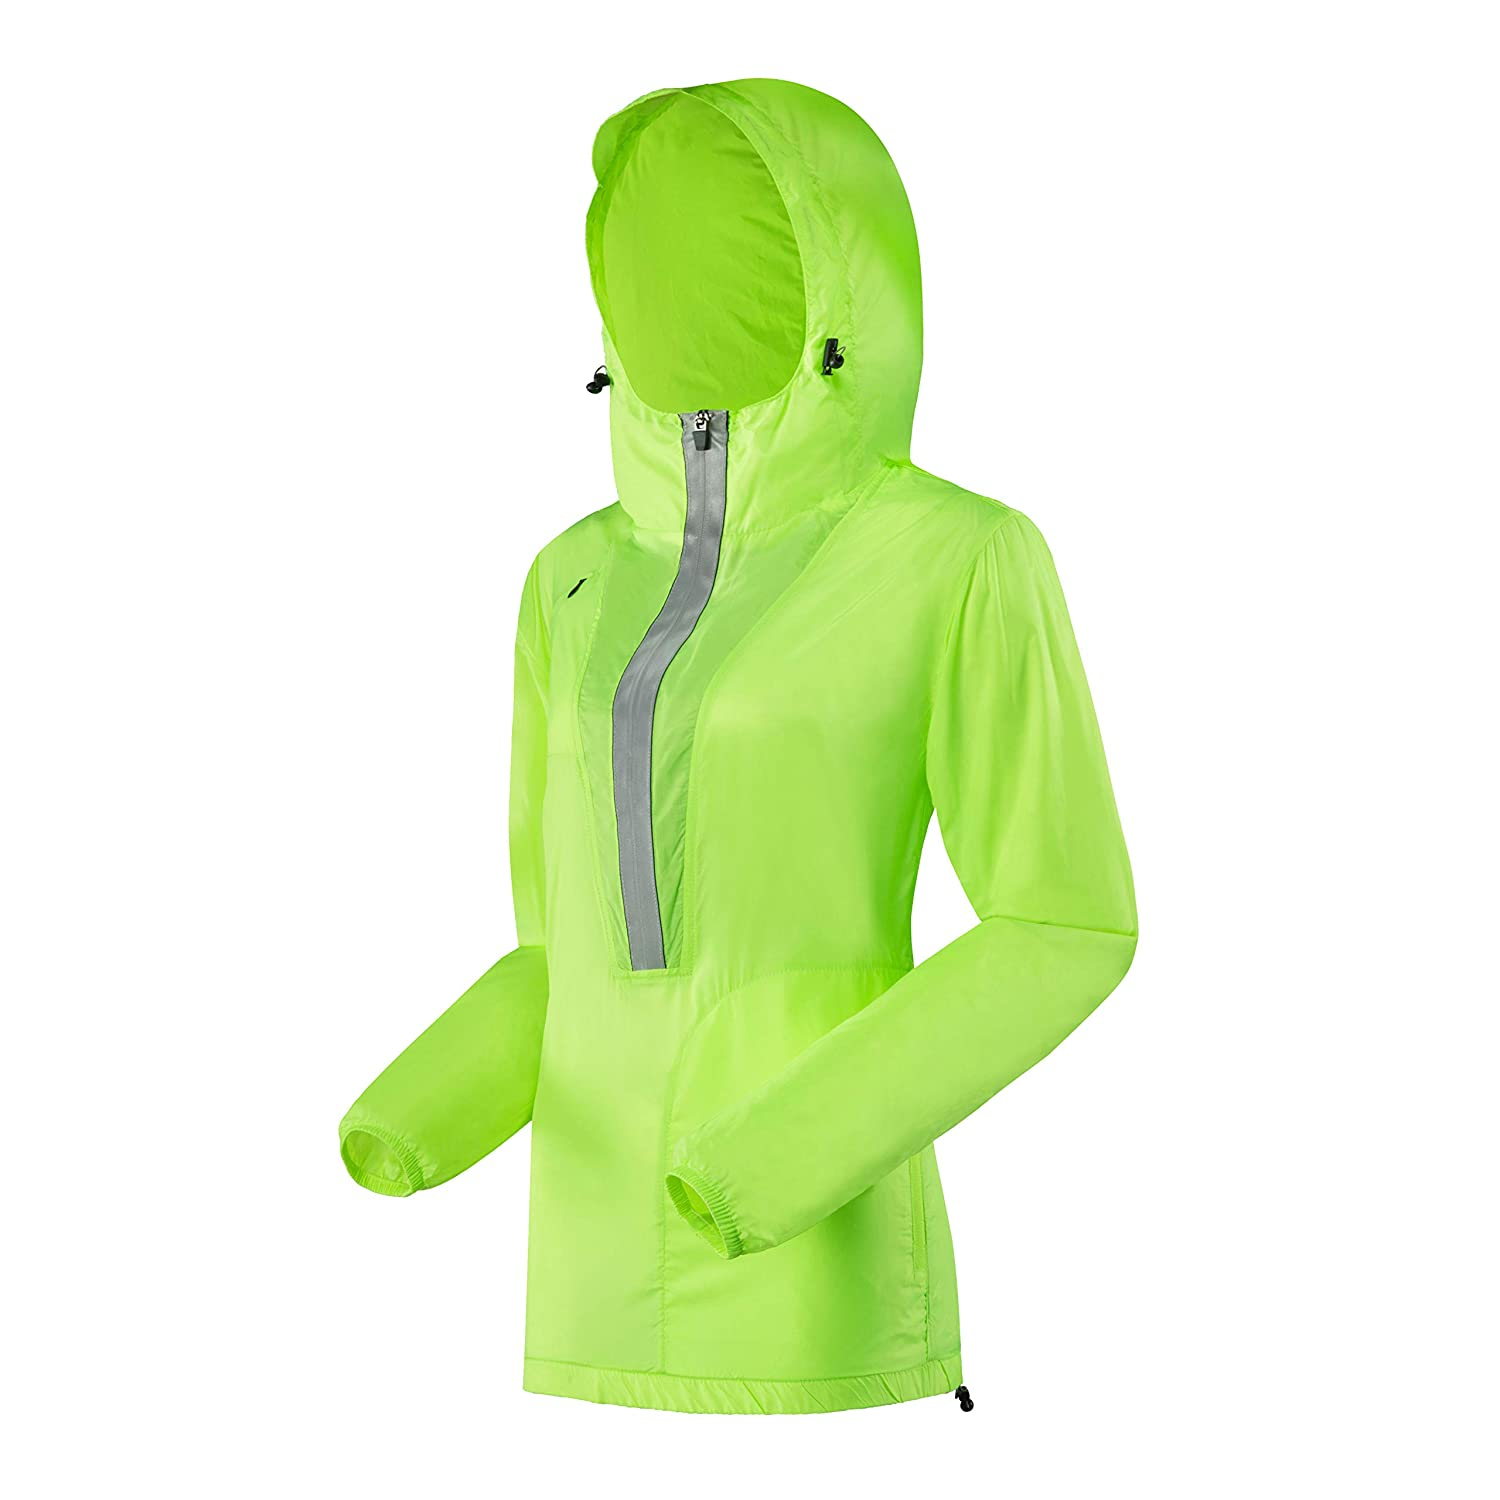 Hooded, Flourencent Yellow J.CARP Women's Windproof Jacket, Big Reflective Elements, Hooded and Packable Fluorescent Green